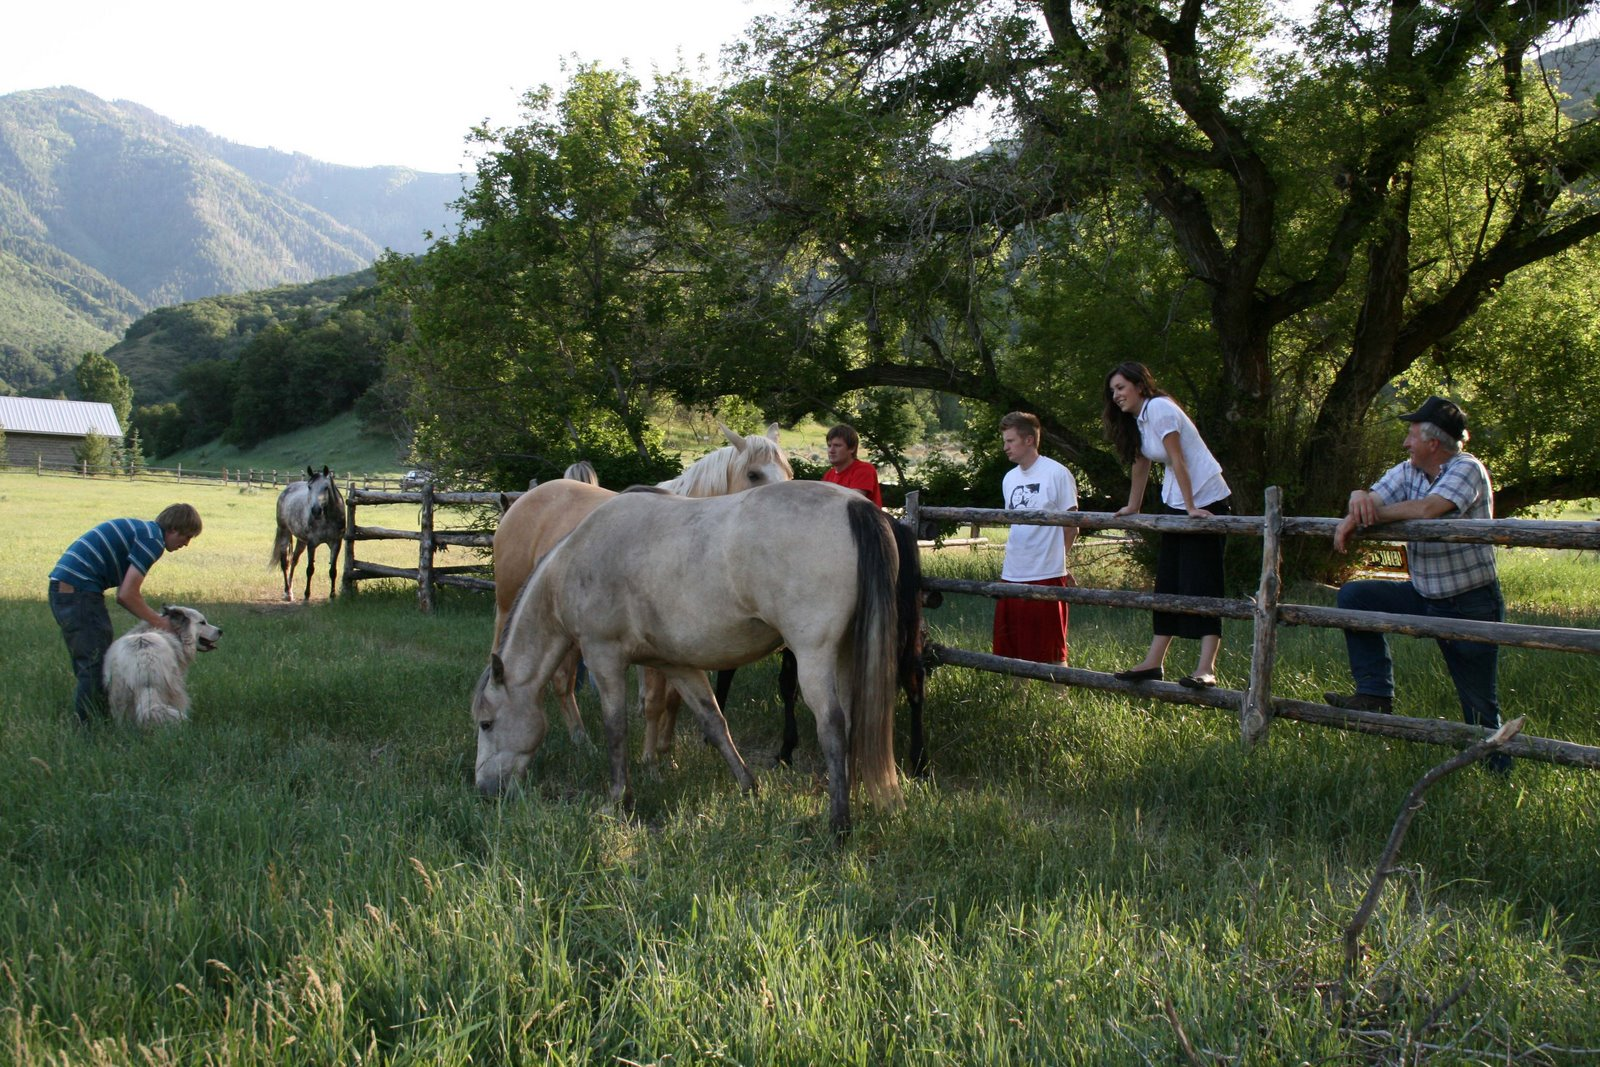 [Family+visiting+horses]